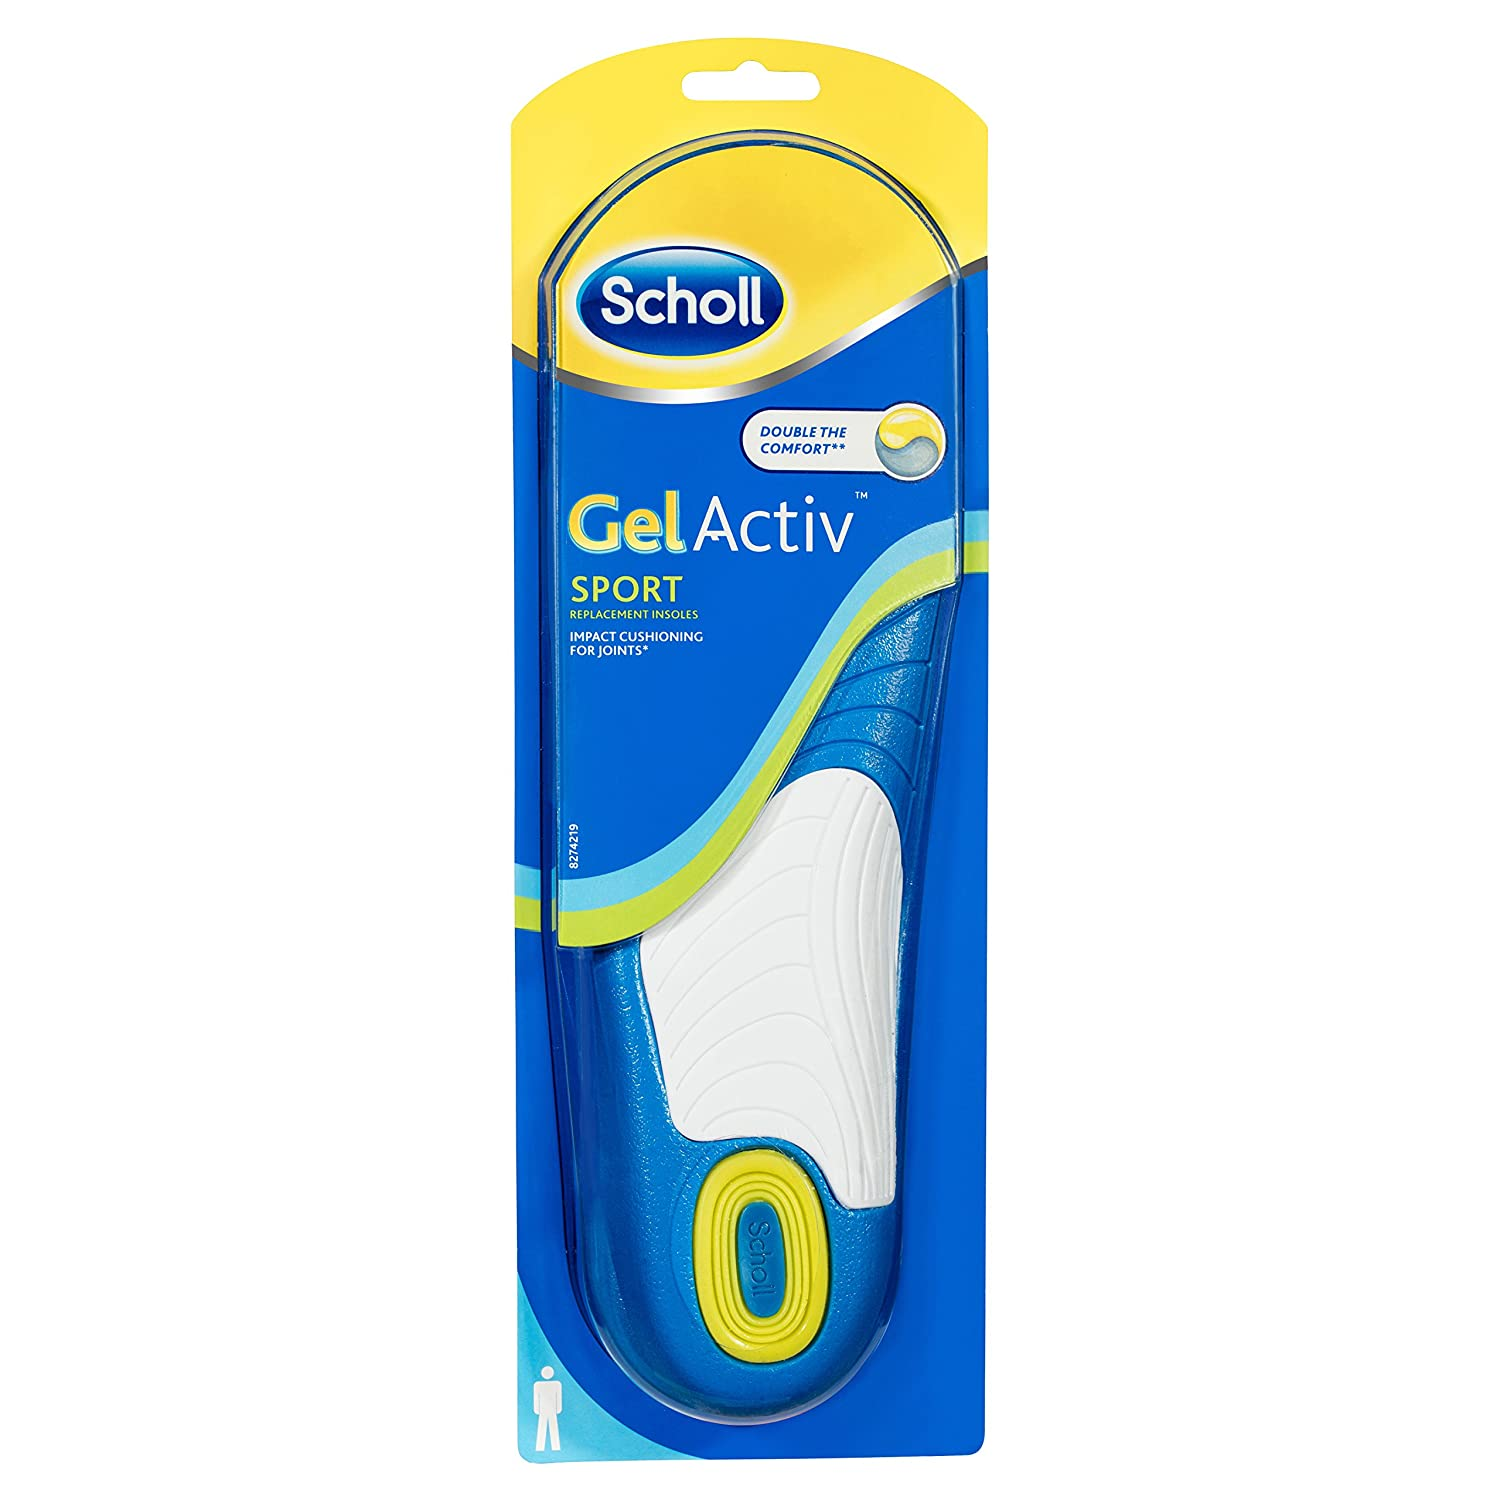 8e4a64226b Scholl Men's Gel Activ Sport Insoles, UK Size 7 to 12: Amazon.co.uk ...